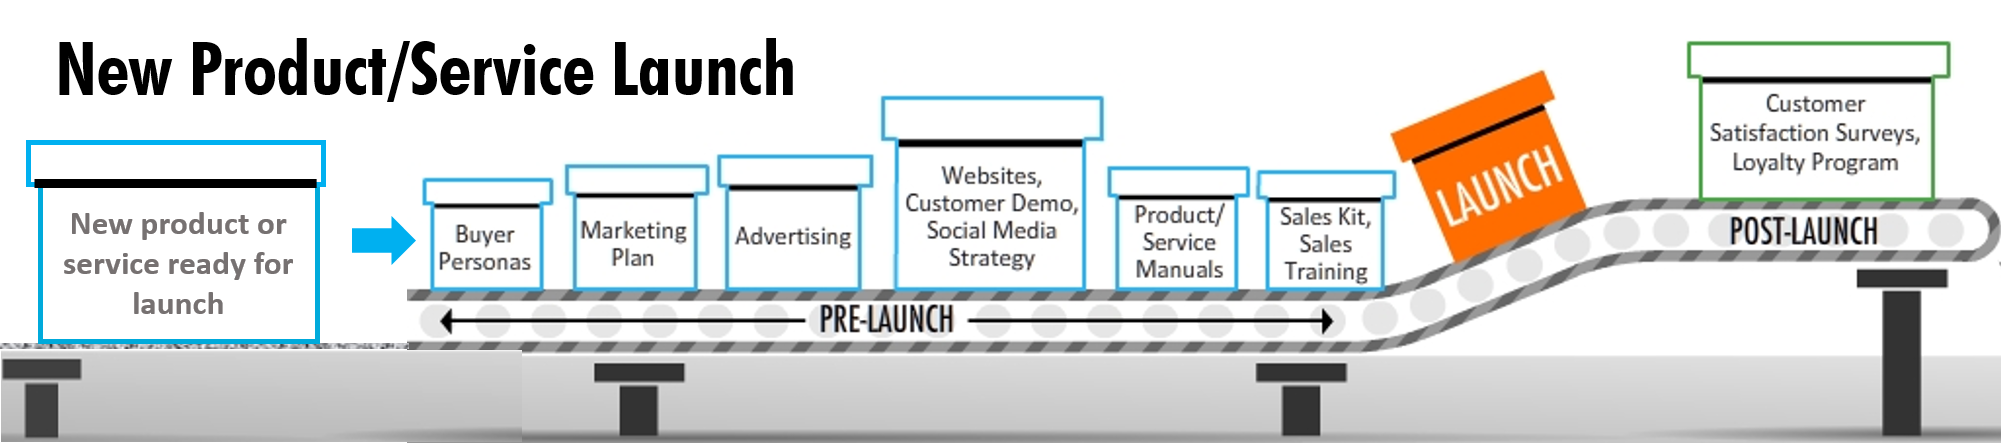 product launch strategy How to create a product launch marketing plan  based on your goals and objectives, your product launch marketing strategy must incorporate these key components:.